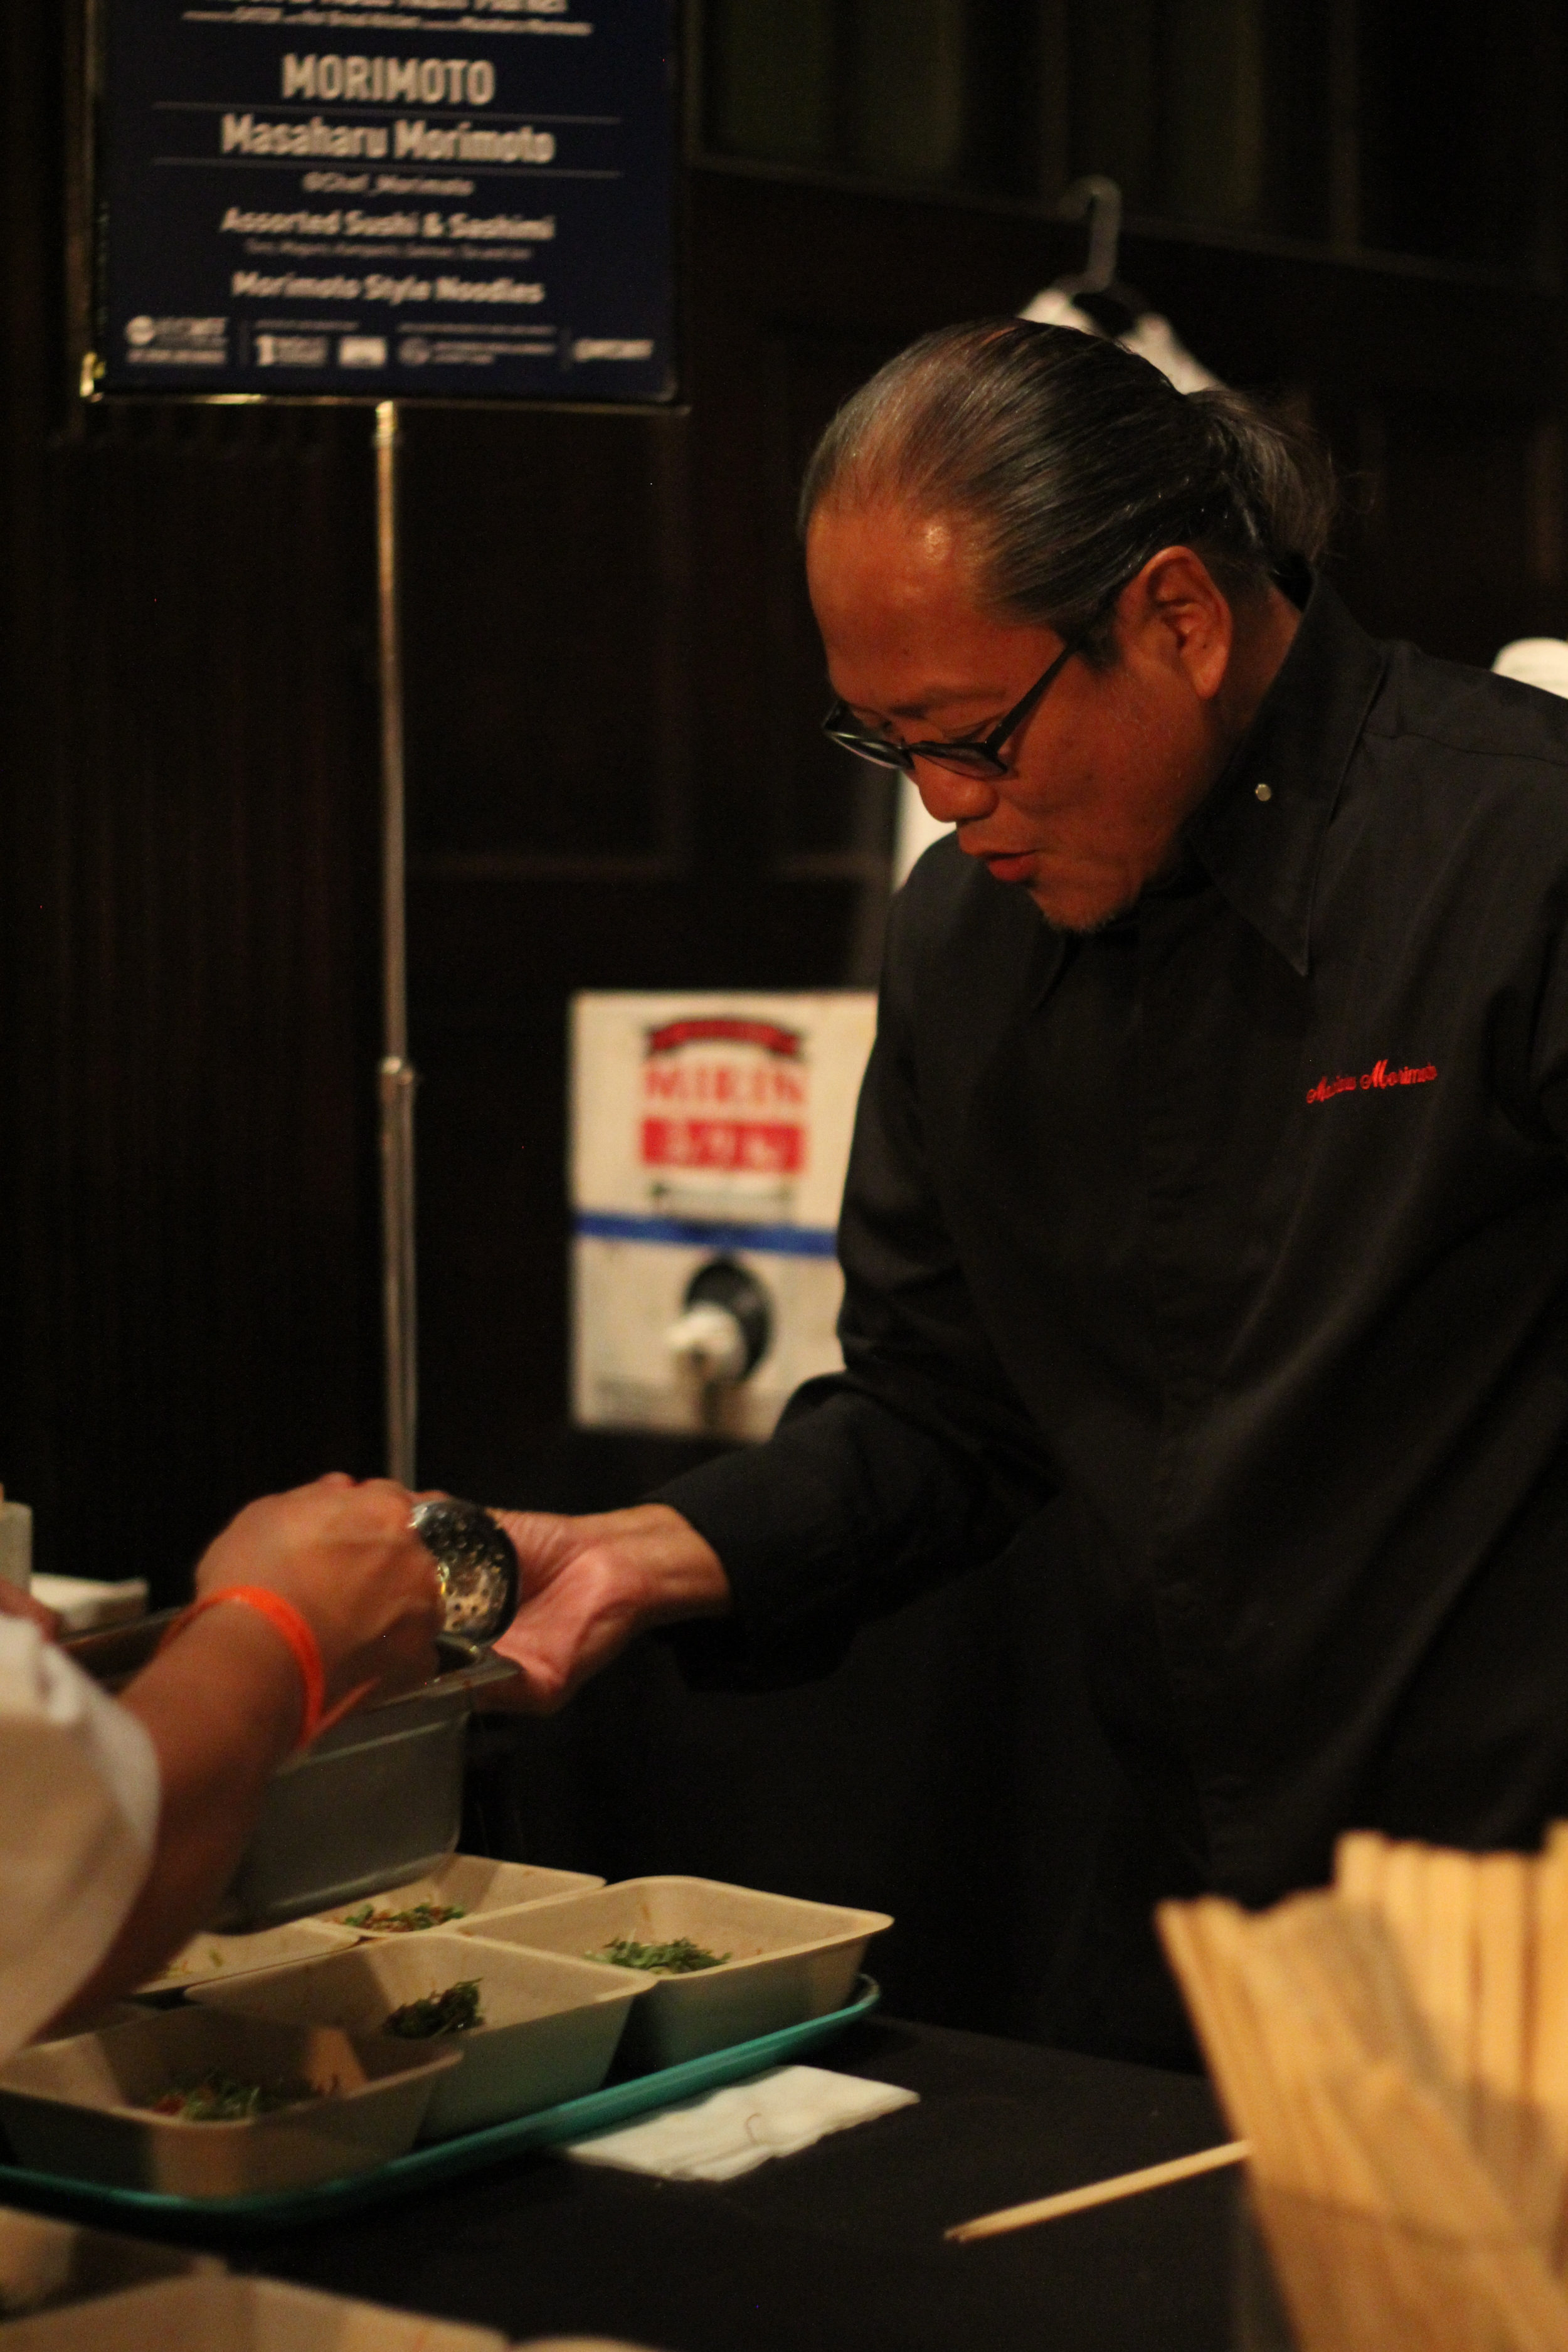 Morimoto dishin' it up fast! The line was long for him.